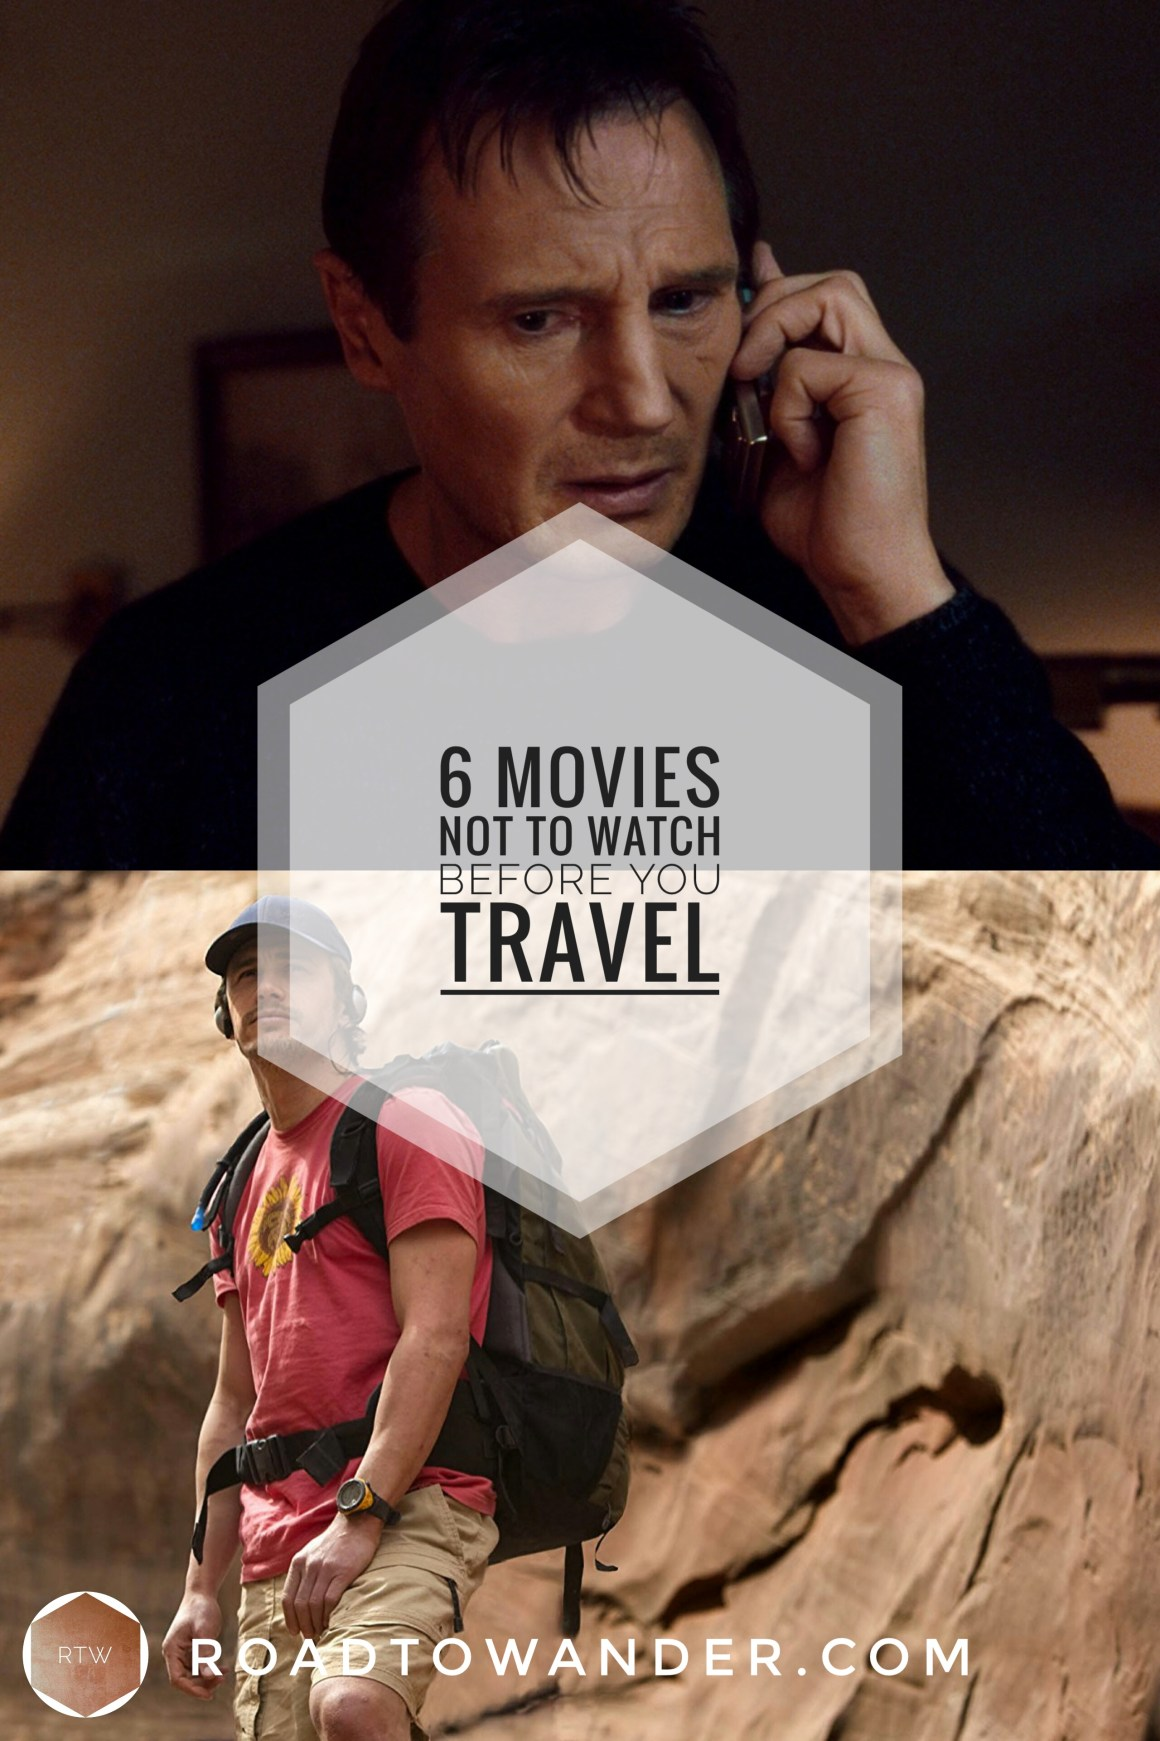 6 movies you definitely do not to watch before you travel